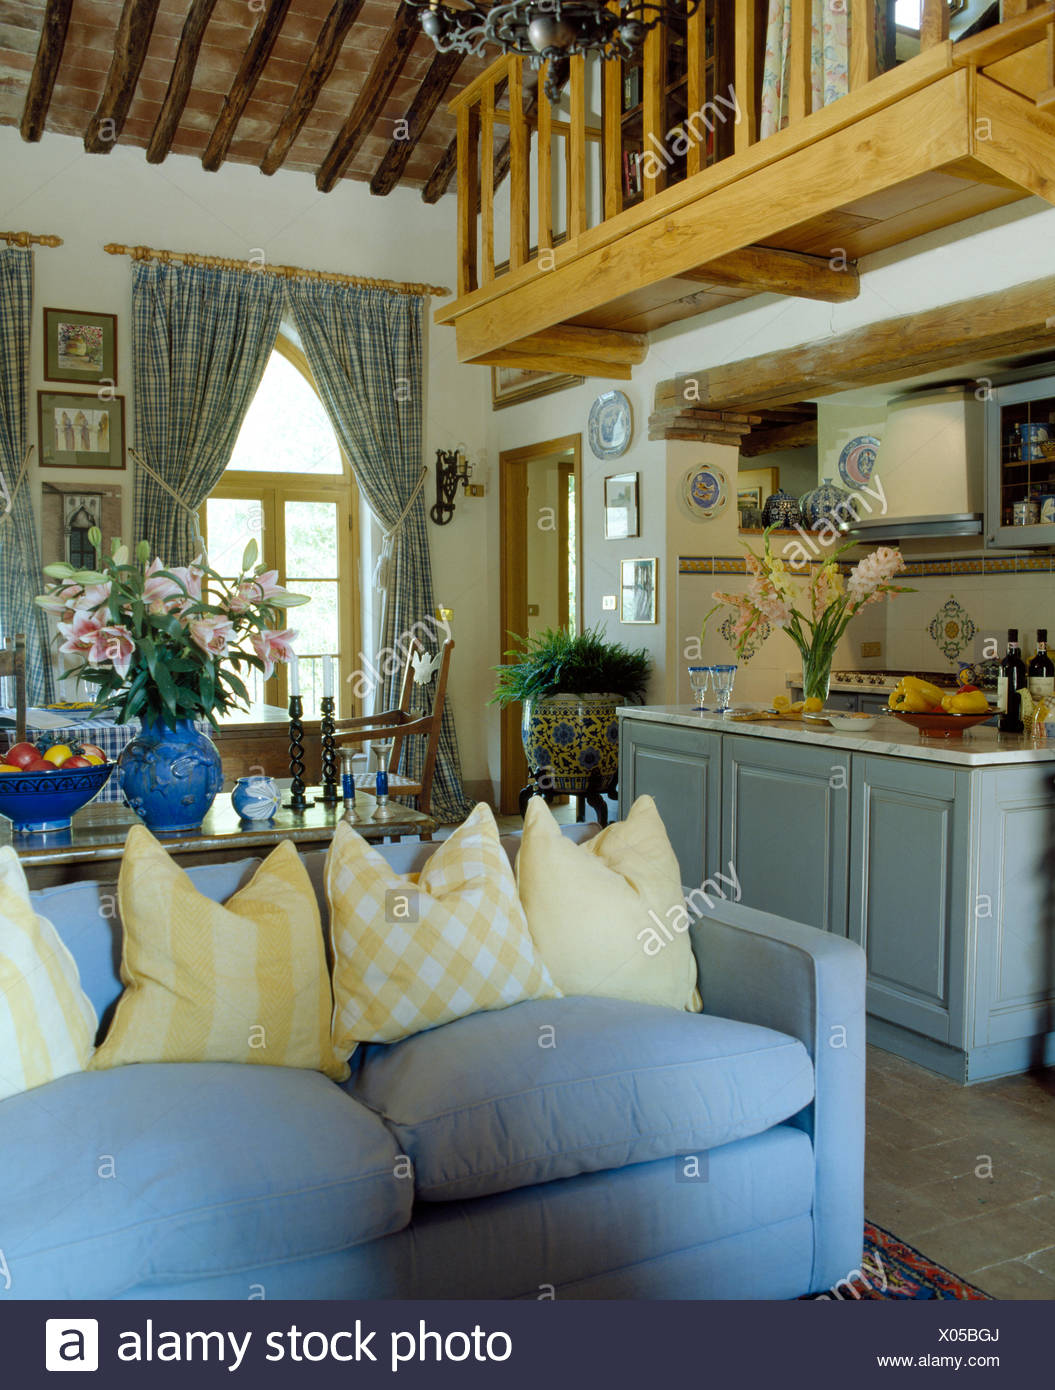 Yellow Cushions On Pale Blue Sofa In Open Plan Italian Living Room With  Mezzanine Balcony Above Kitchen